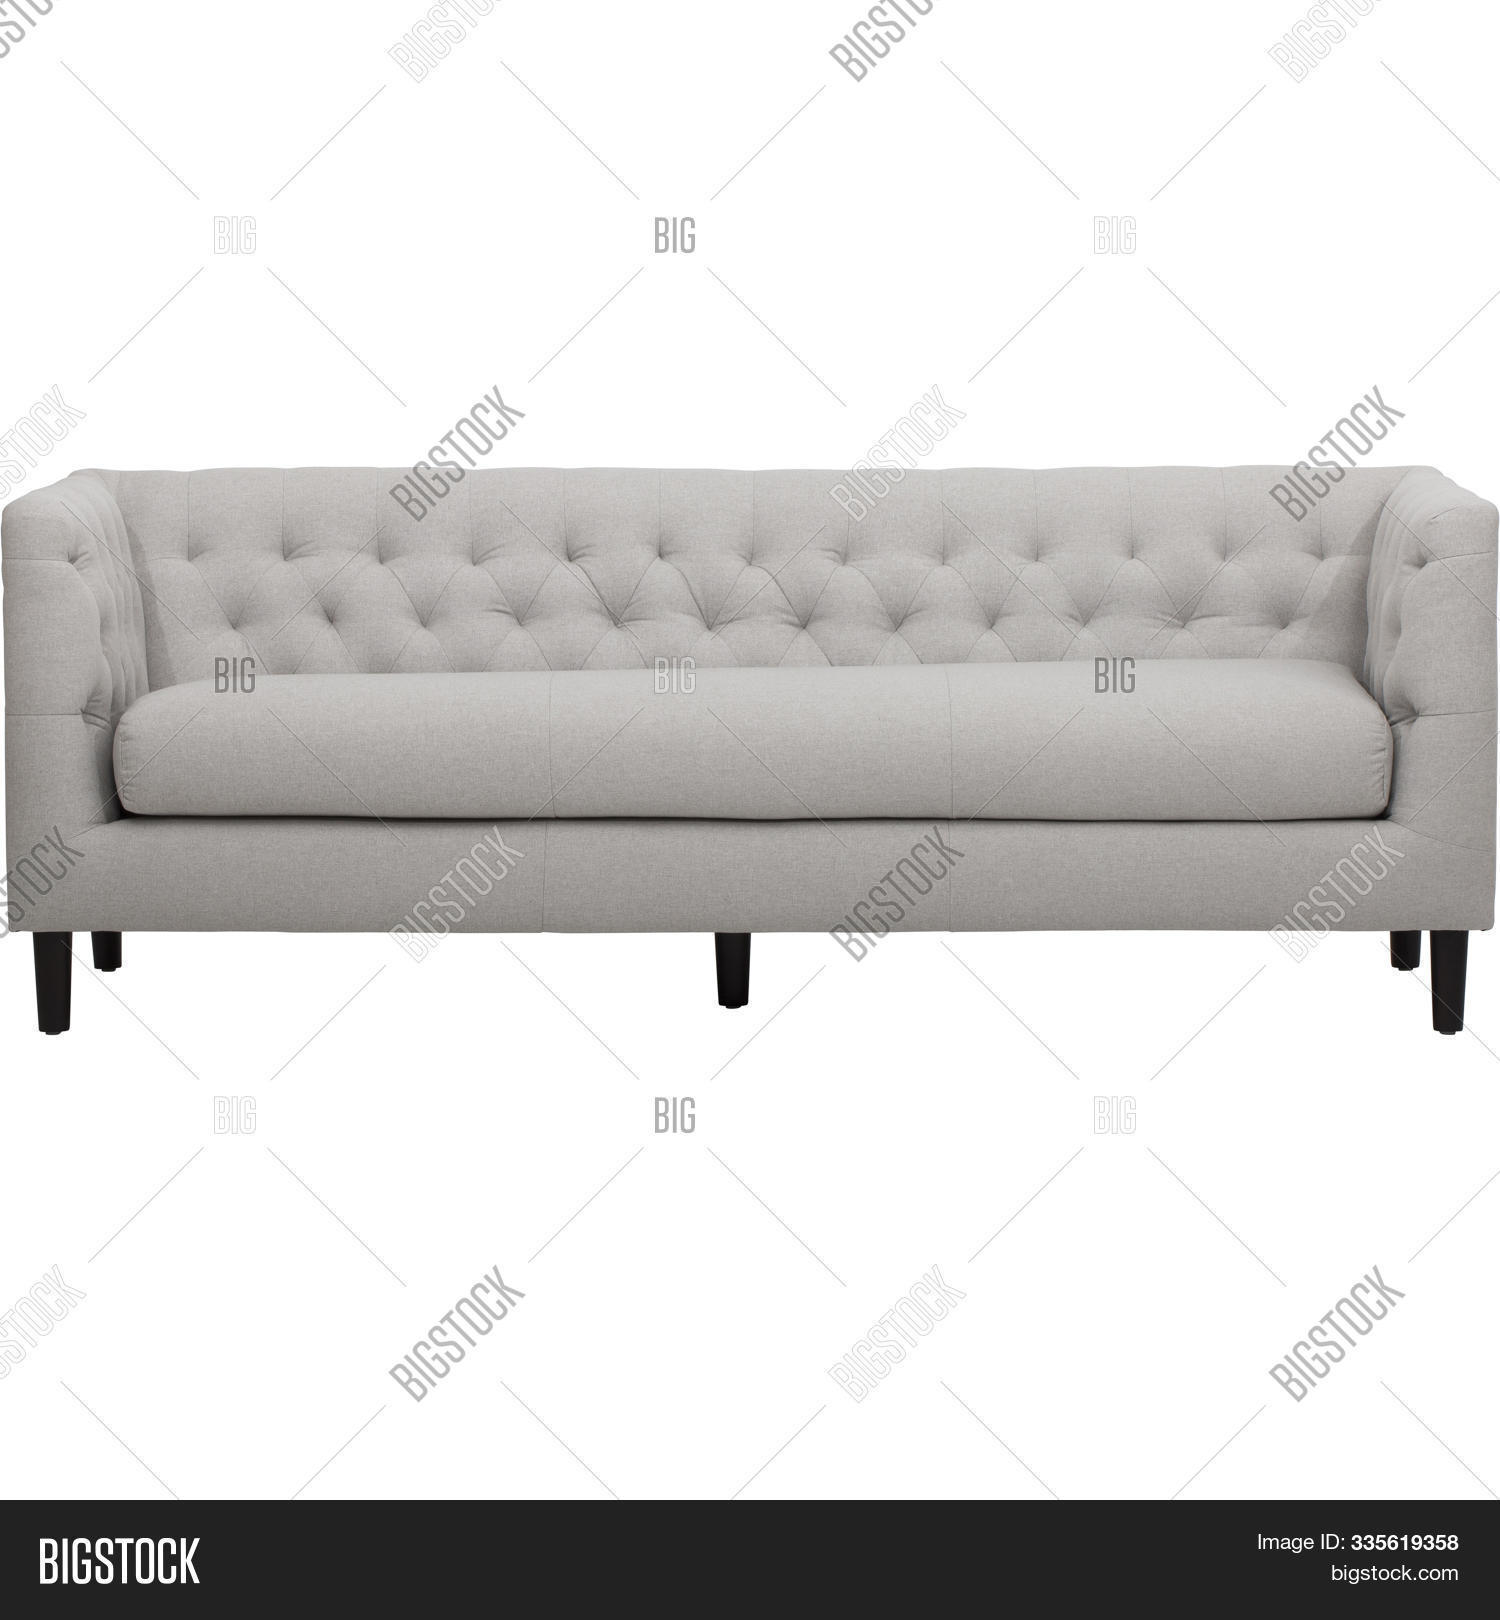 White Two Seater Sofa Image Photo Free Trial Bigstock